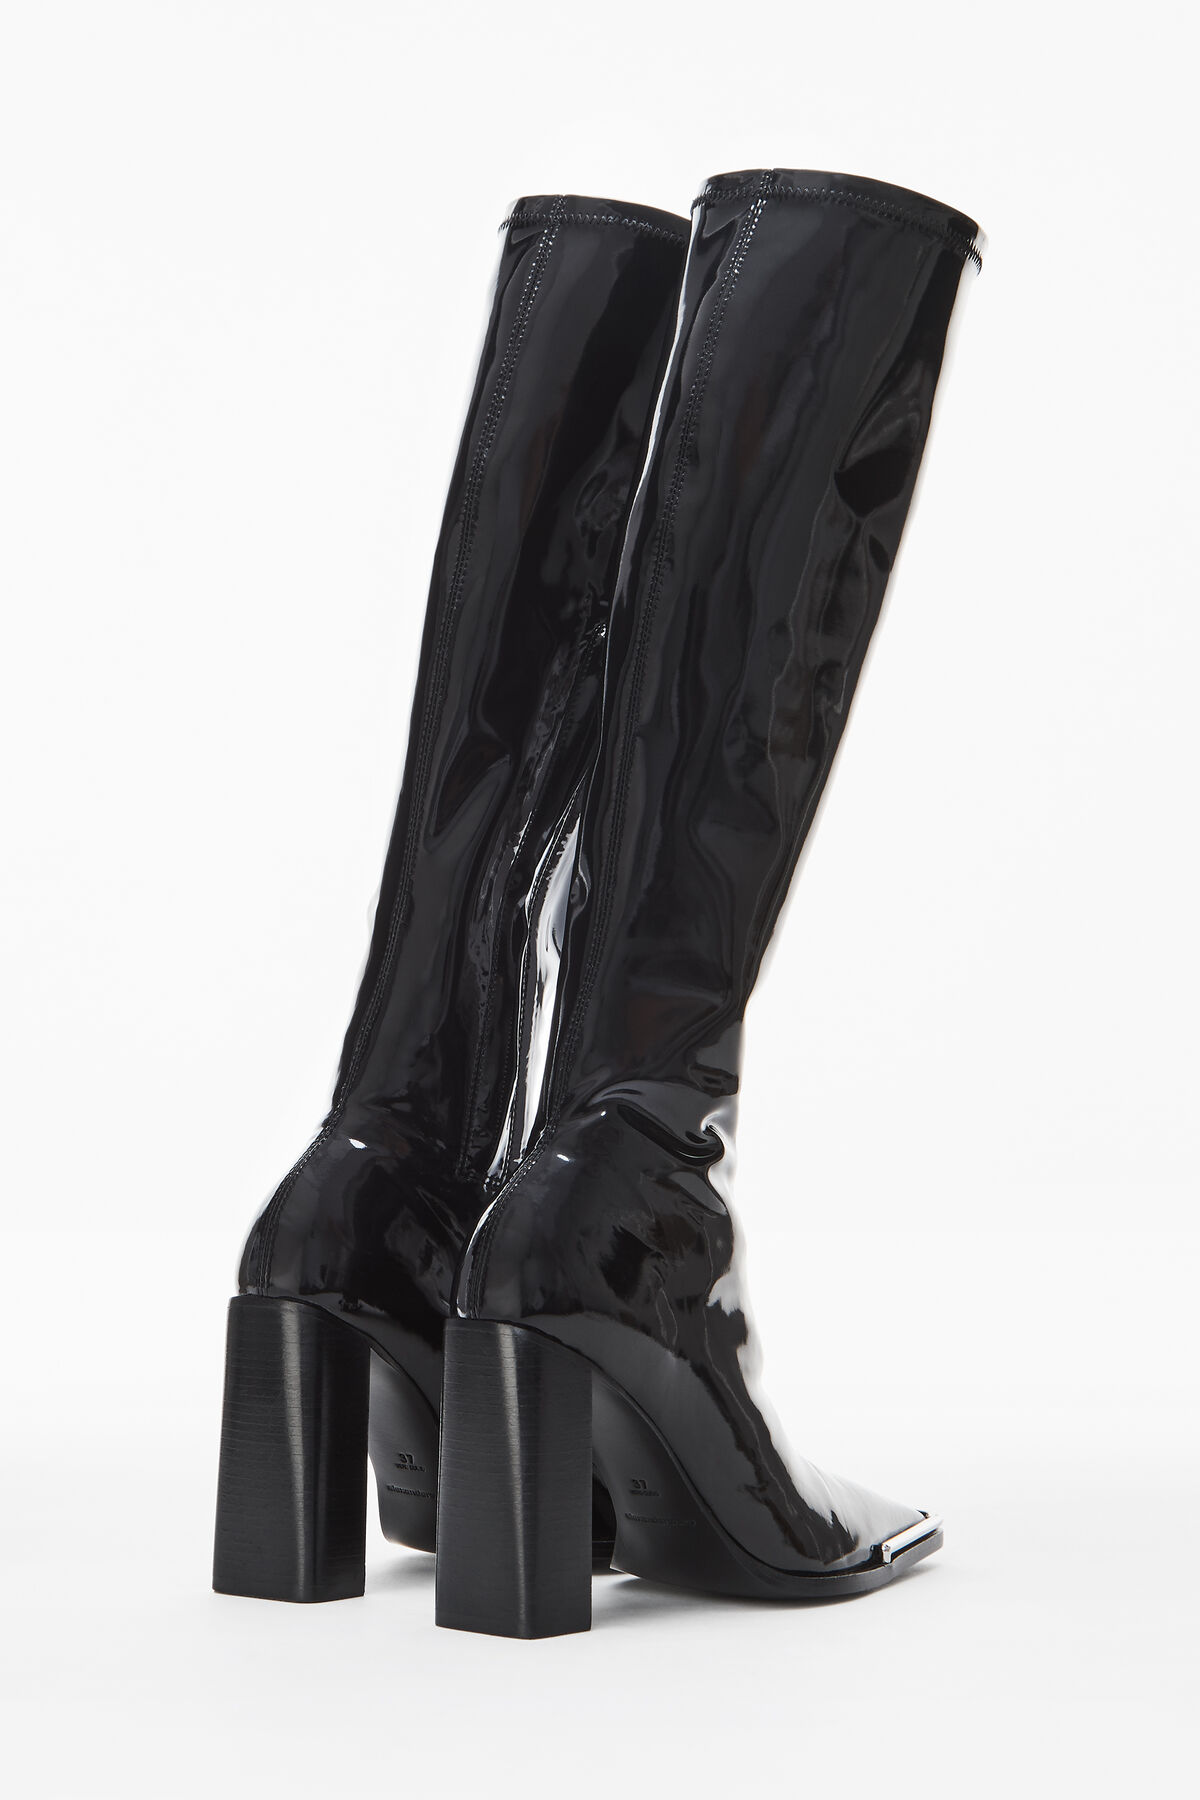 alexanderwang | Women's Shoes